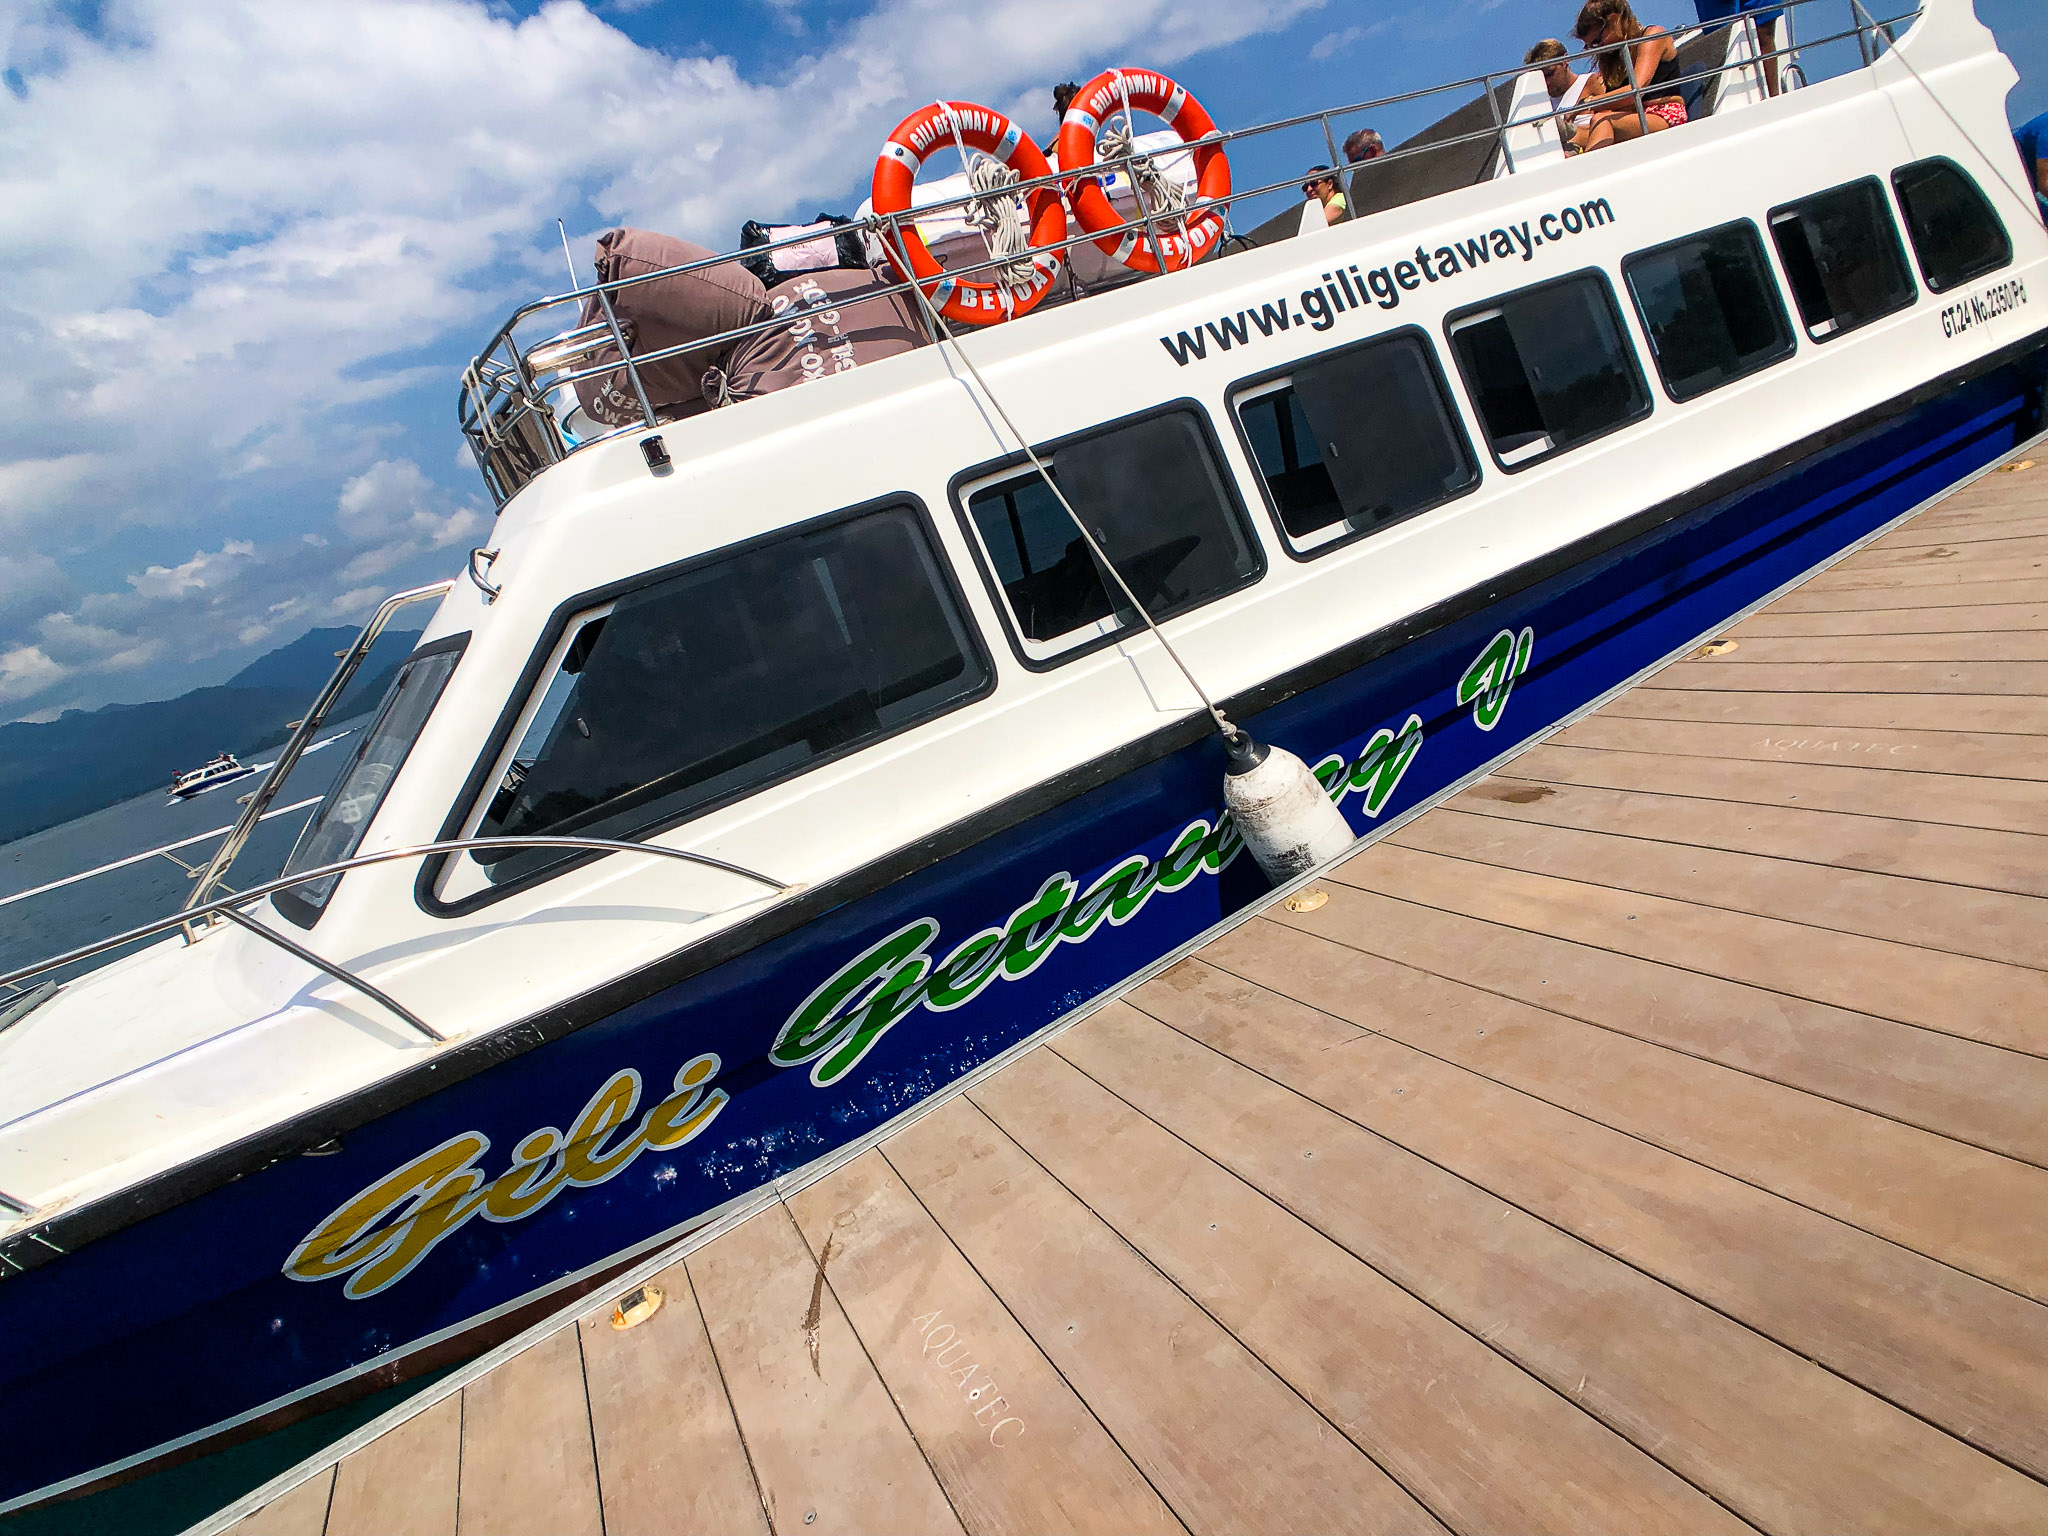 The UPDATED 2020 Bali Fast Speed Boat & Ferry Guide and Ratings